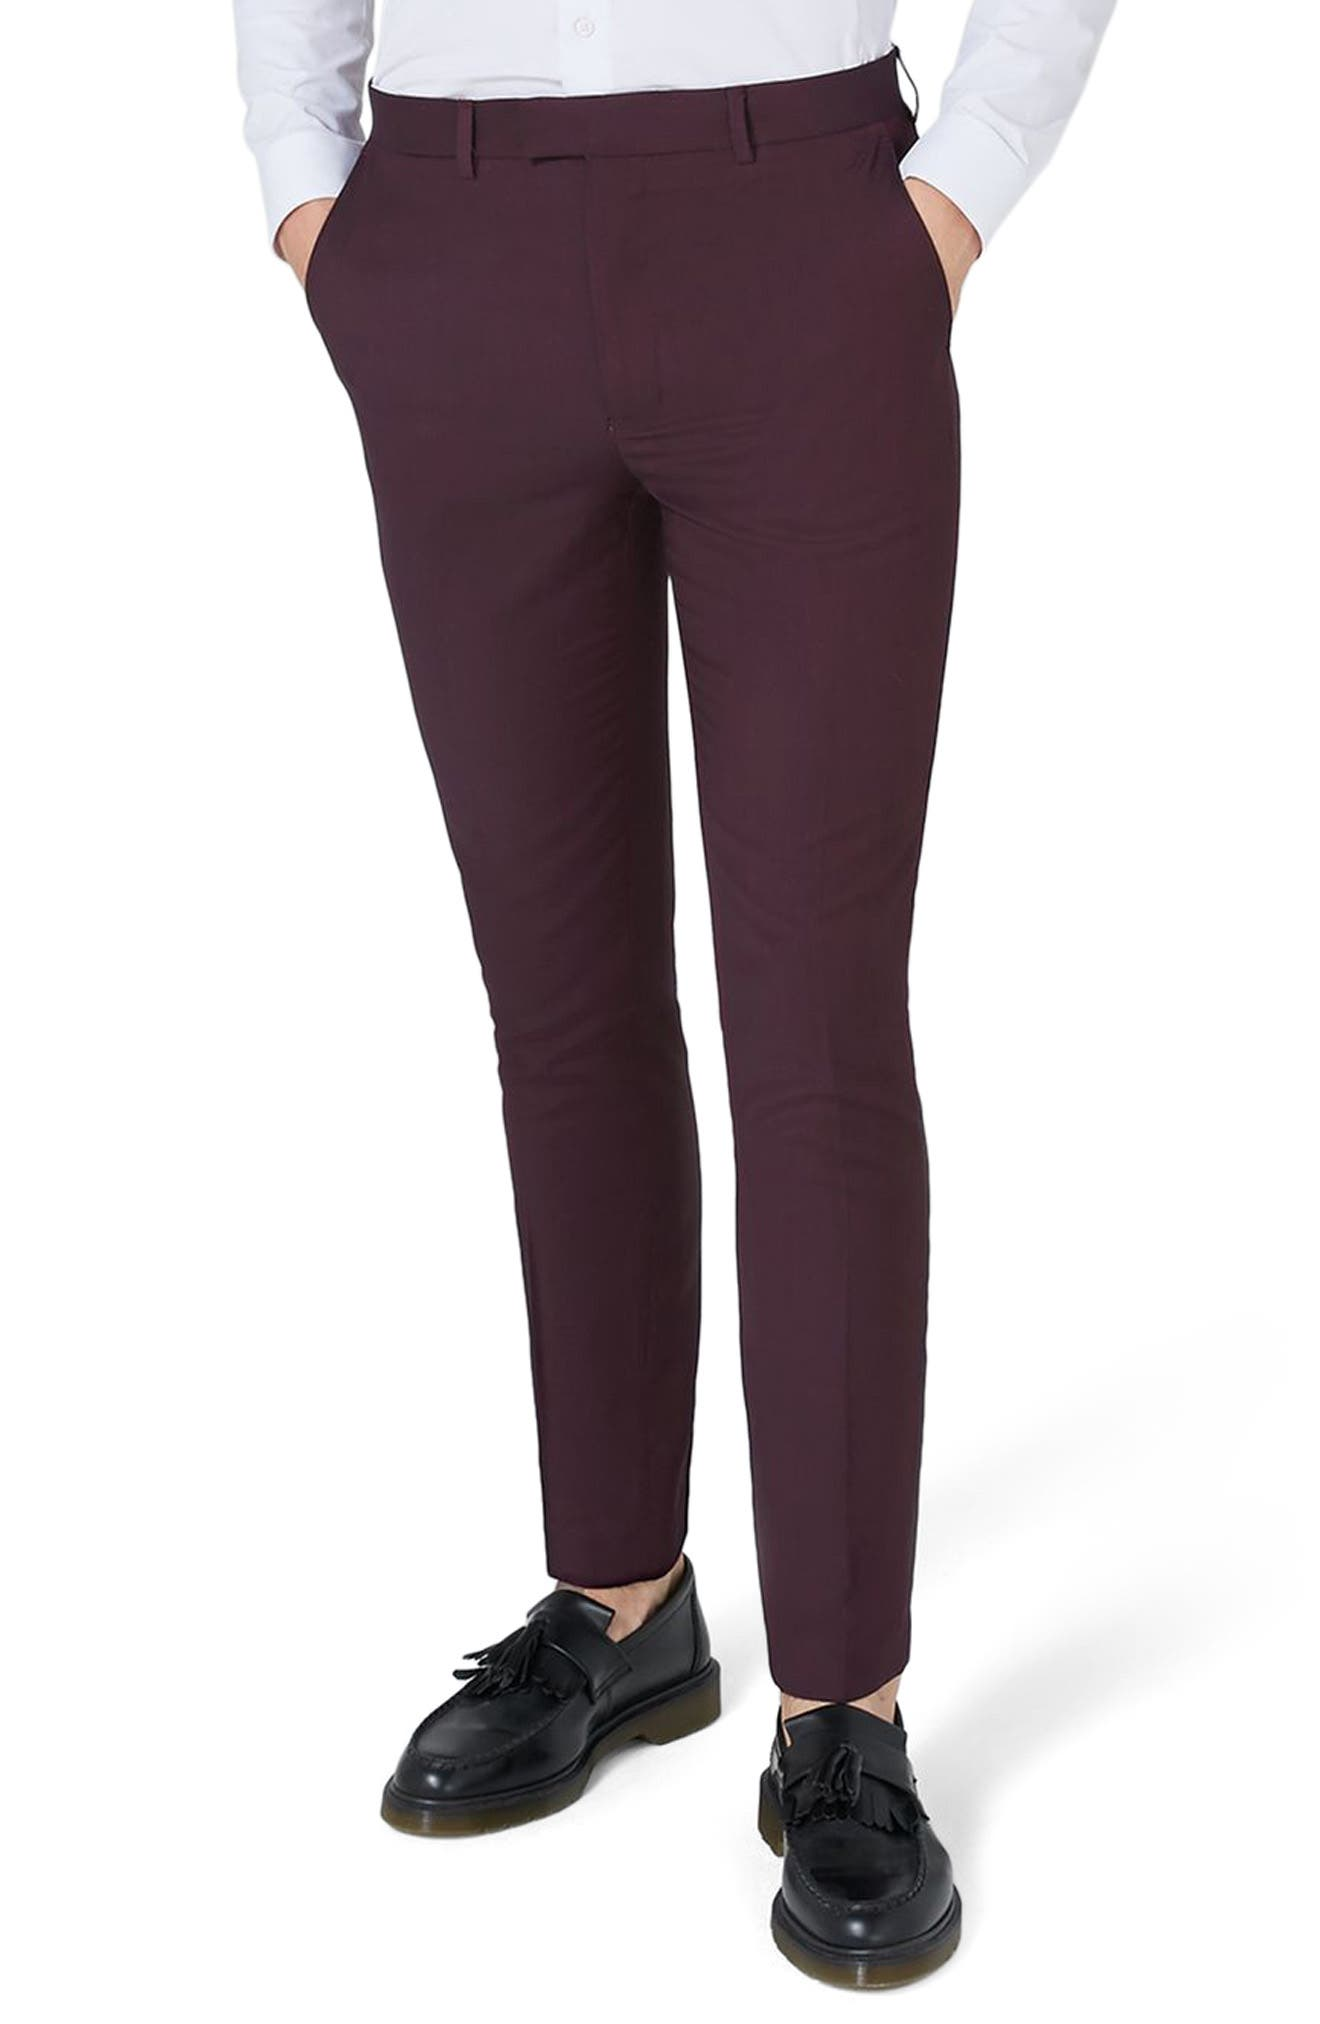 TOPMAN Skinny Fit Plum Suit Trousers, Main, color, 500